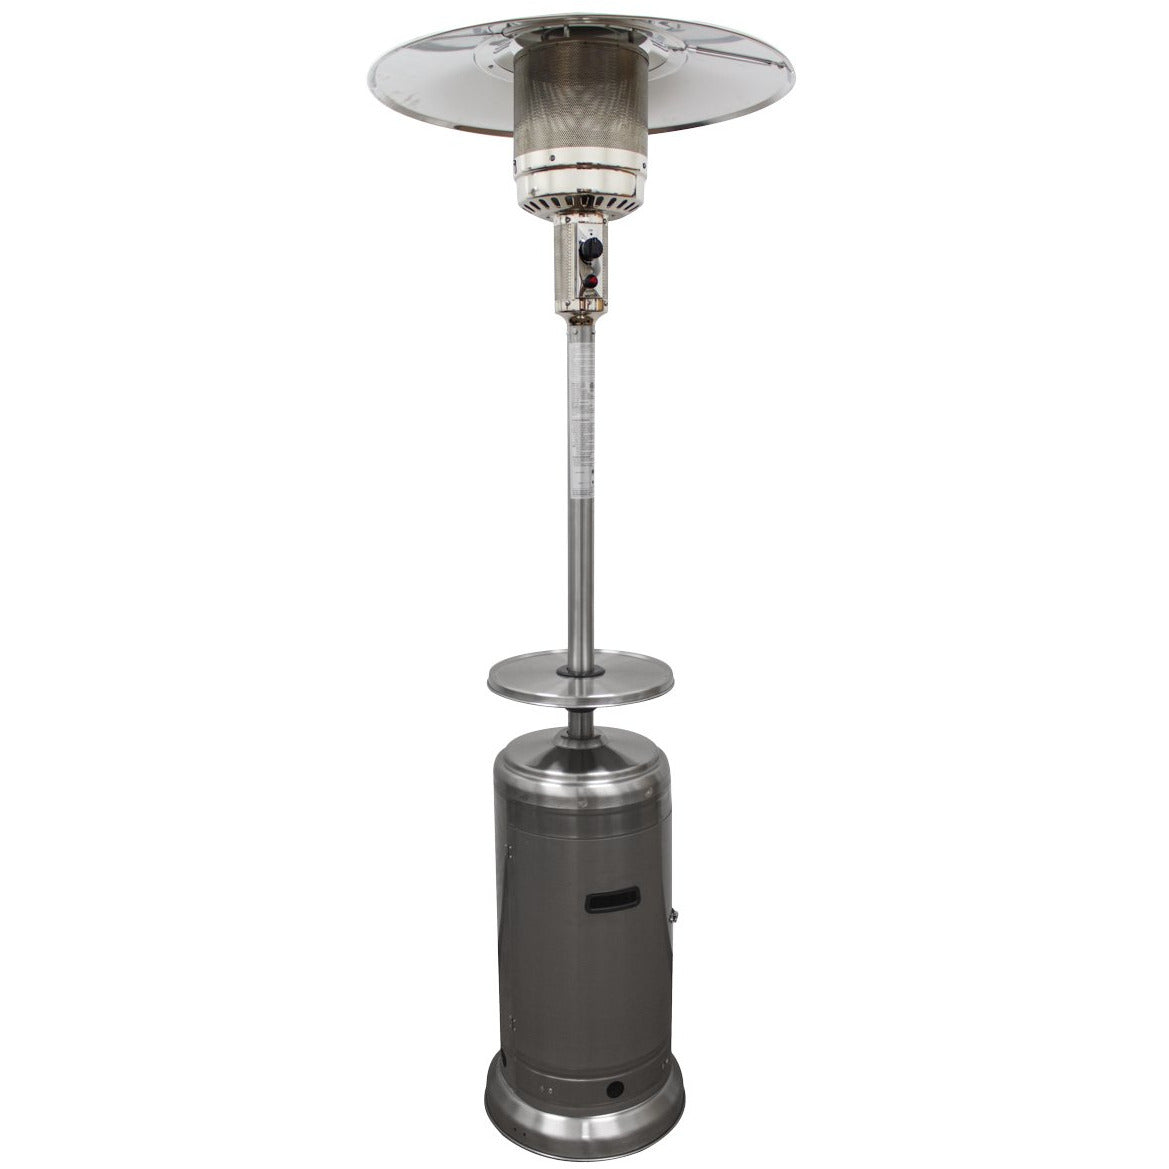 Tall Stainless Steel Patio Heater